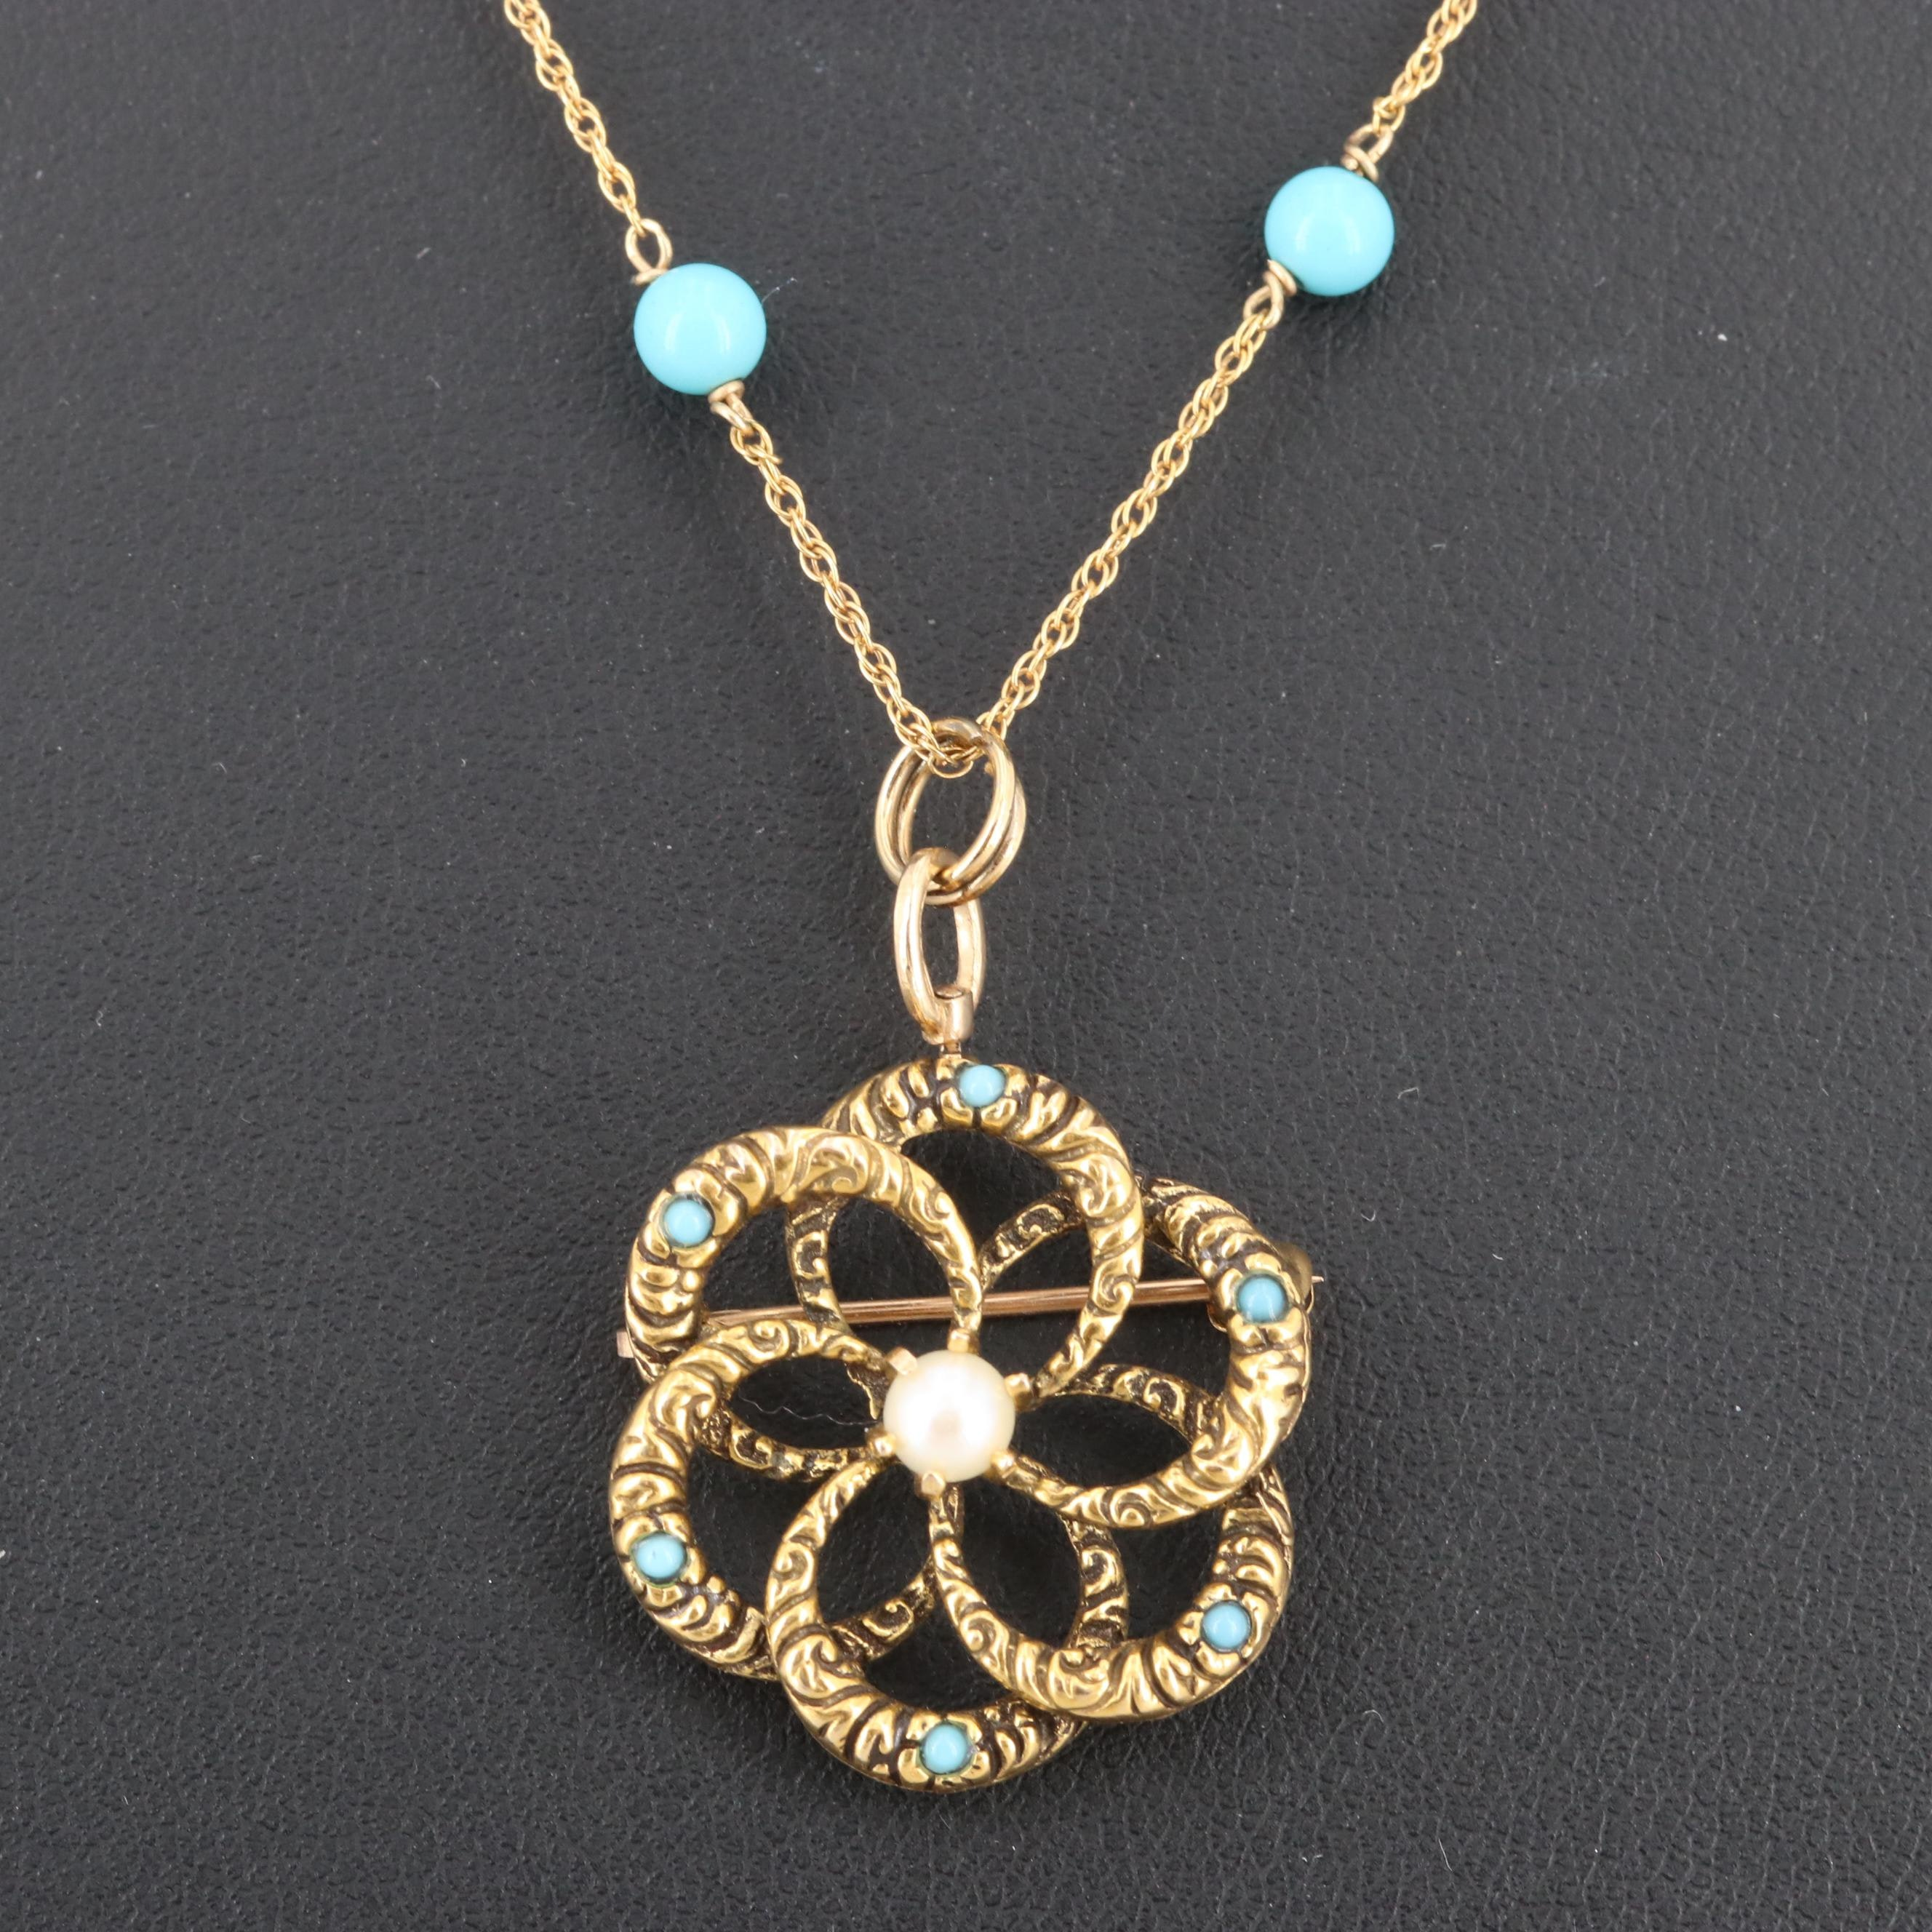 Victorian 14K Gold Love Knot Pendant Necklace with Pearl and Imitation Turquoise